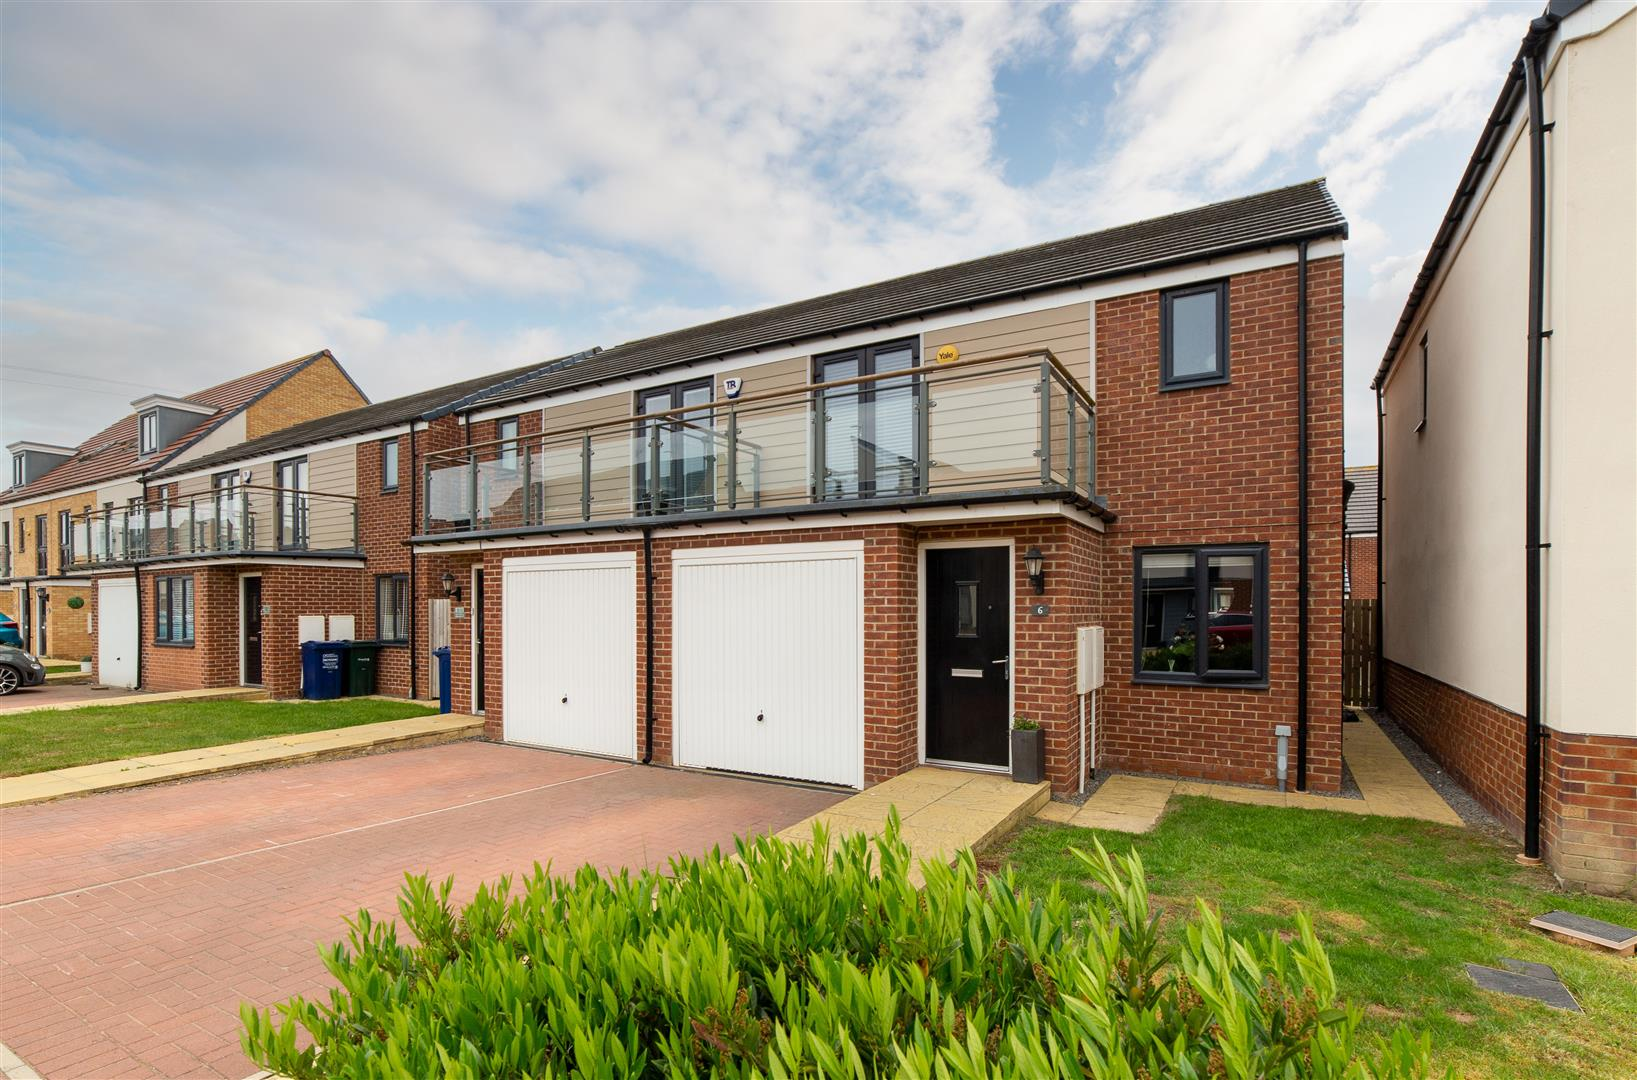 3 bed semi-detached house for sale in Greville Gardens, Newcastle Upon Tyne, NE13